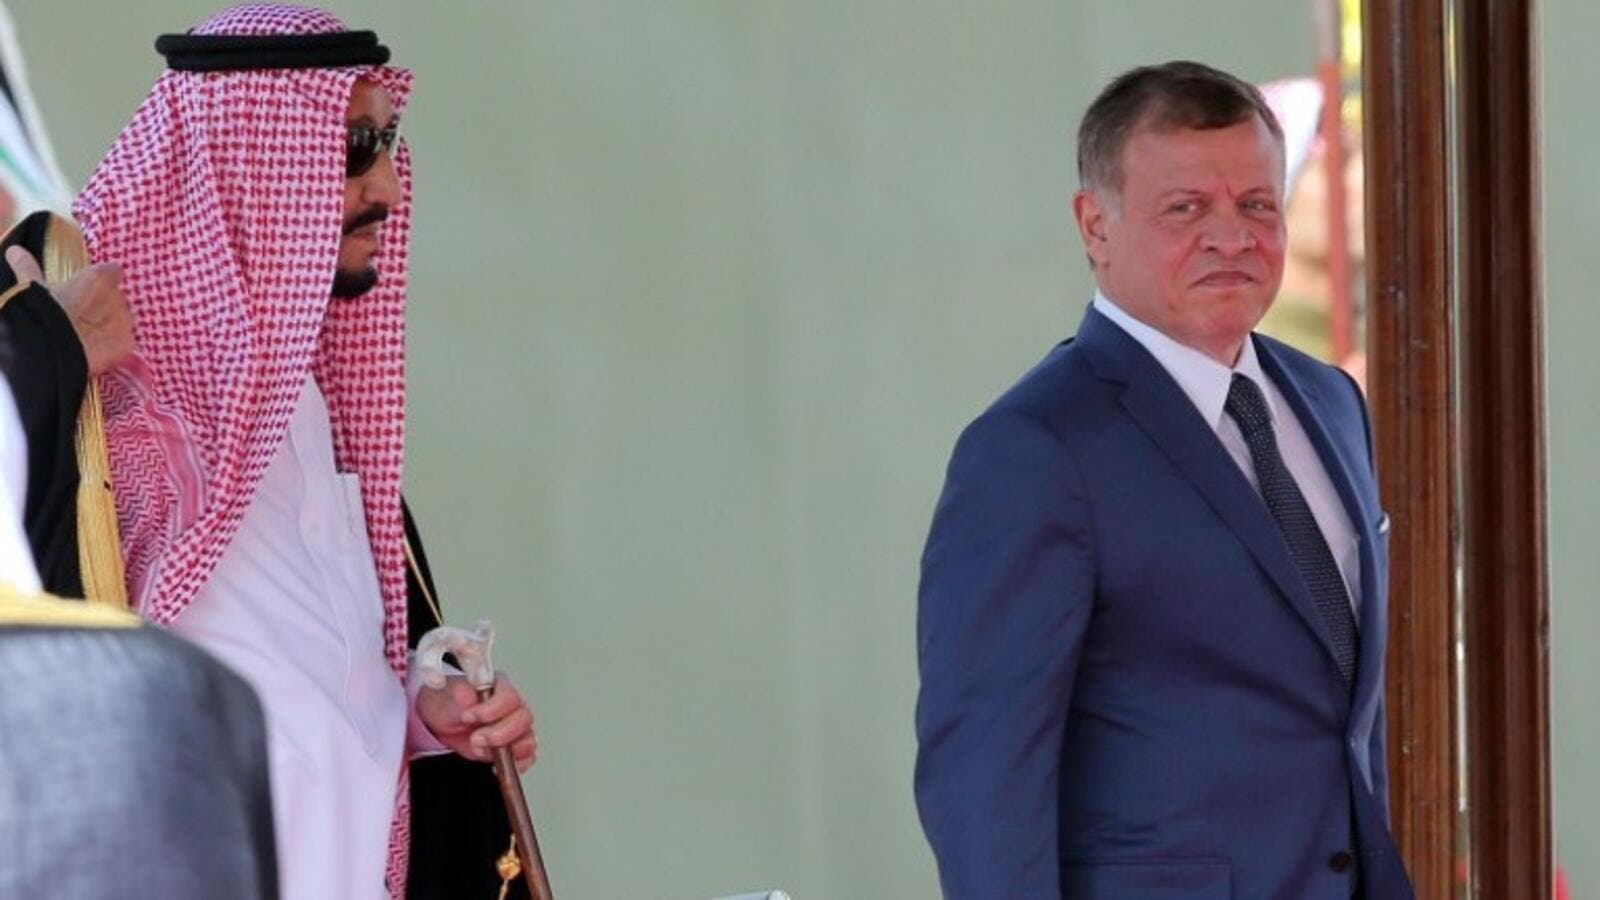 Saudi Arabia's King Salman and Jordanian King Abdullah II, Amman on March 27, 2017 (AFP Photo/Khalil Mazraawi)